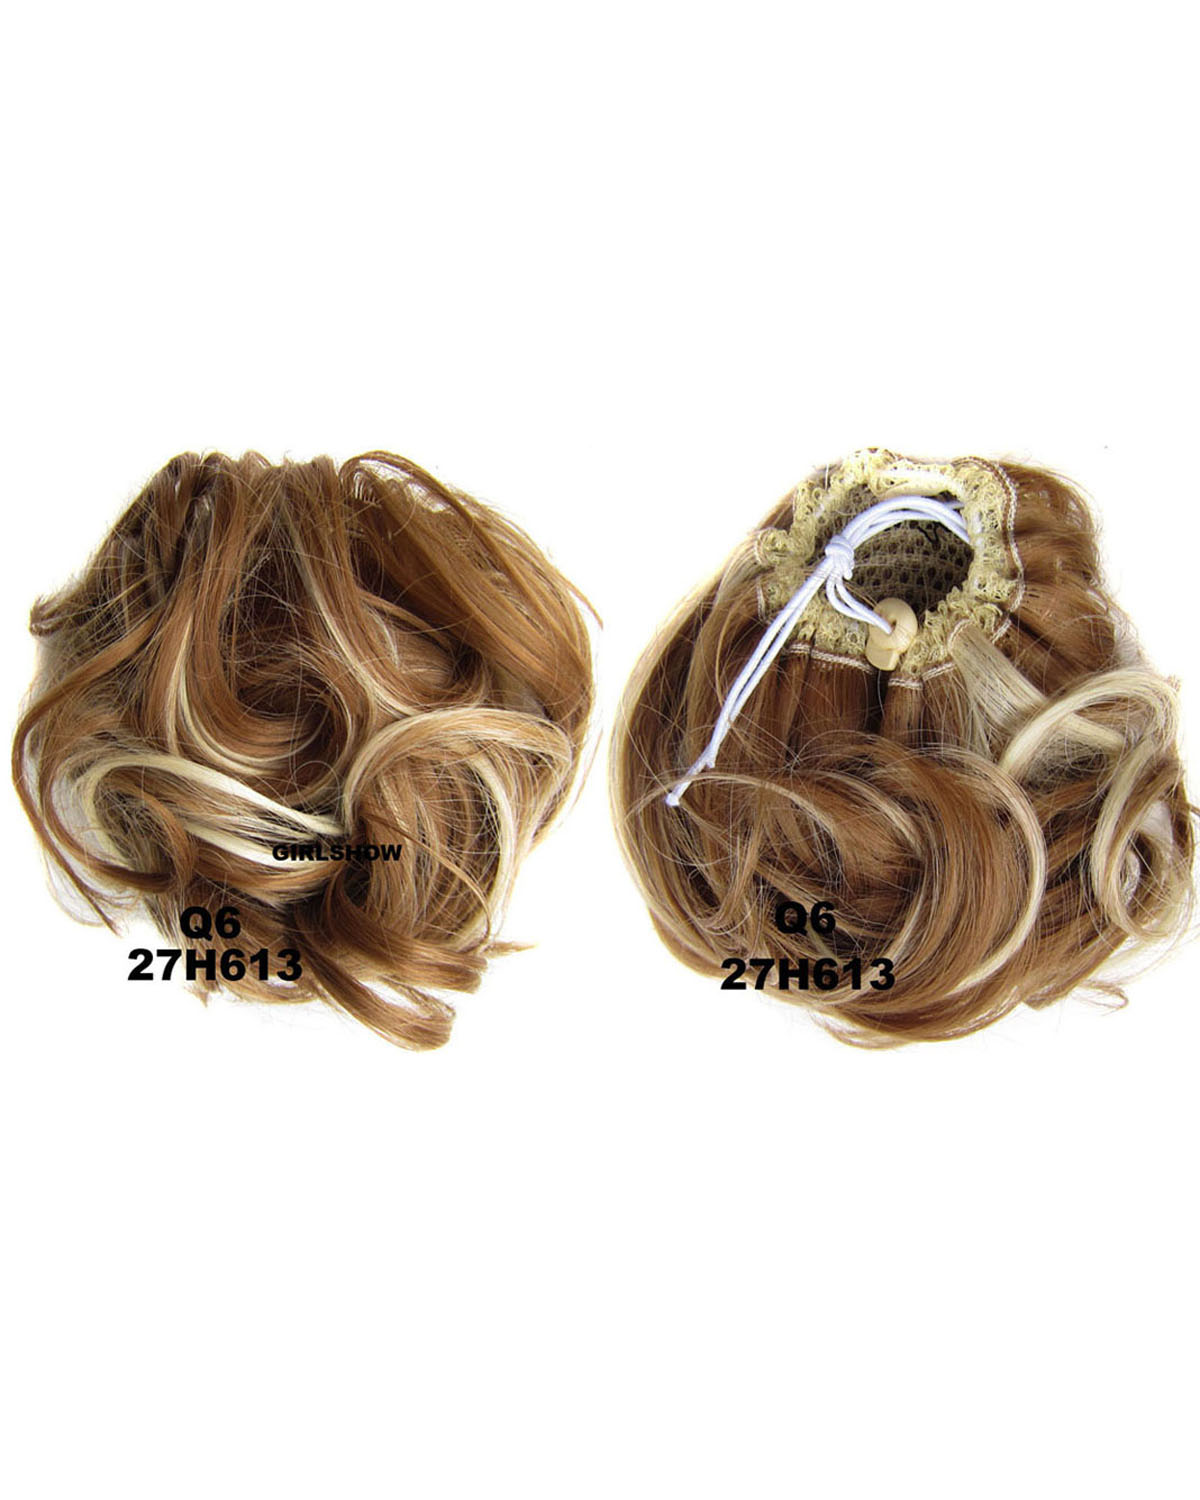 Ladies Newly Vibrant Curly and Short Hair Buns Drawstring Synthetic Hair Extension Bride Scrunchies27H613